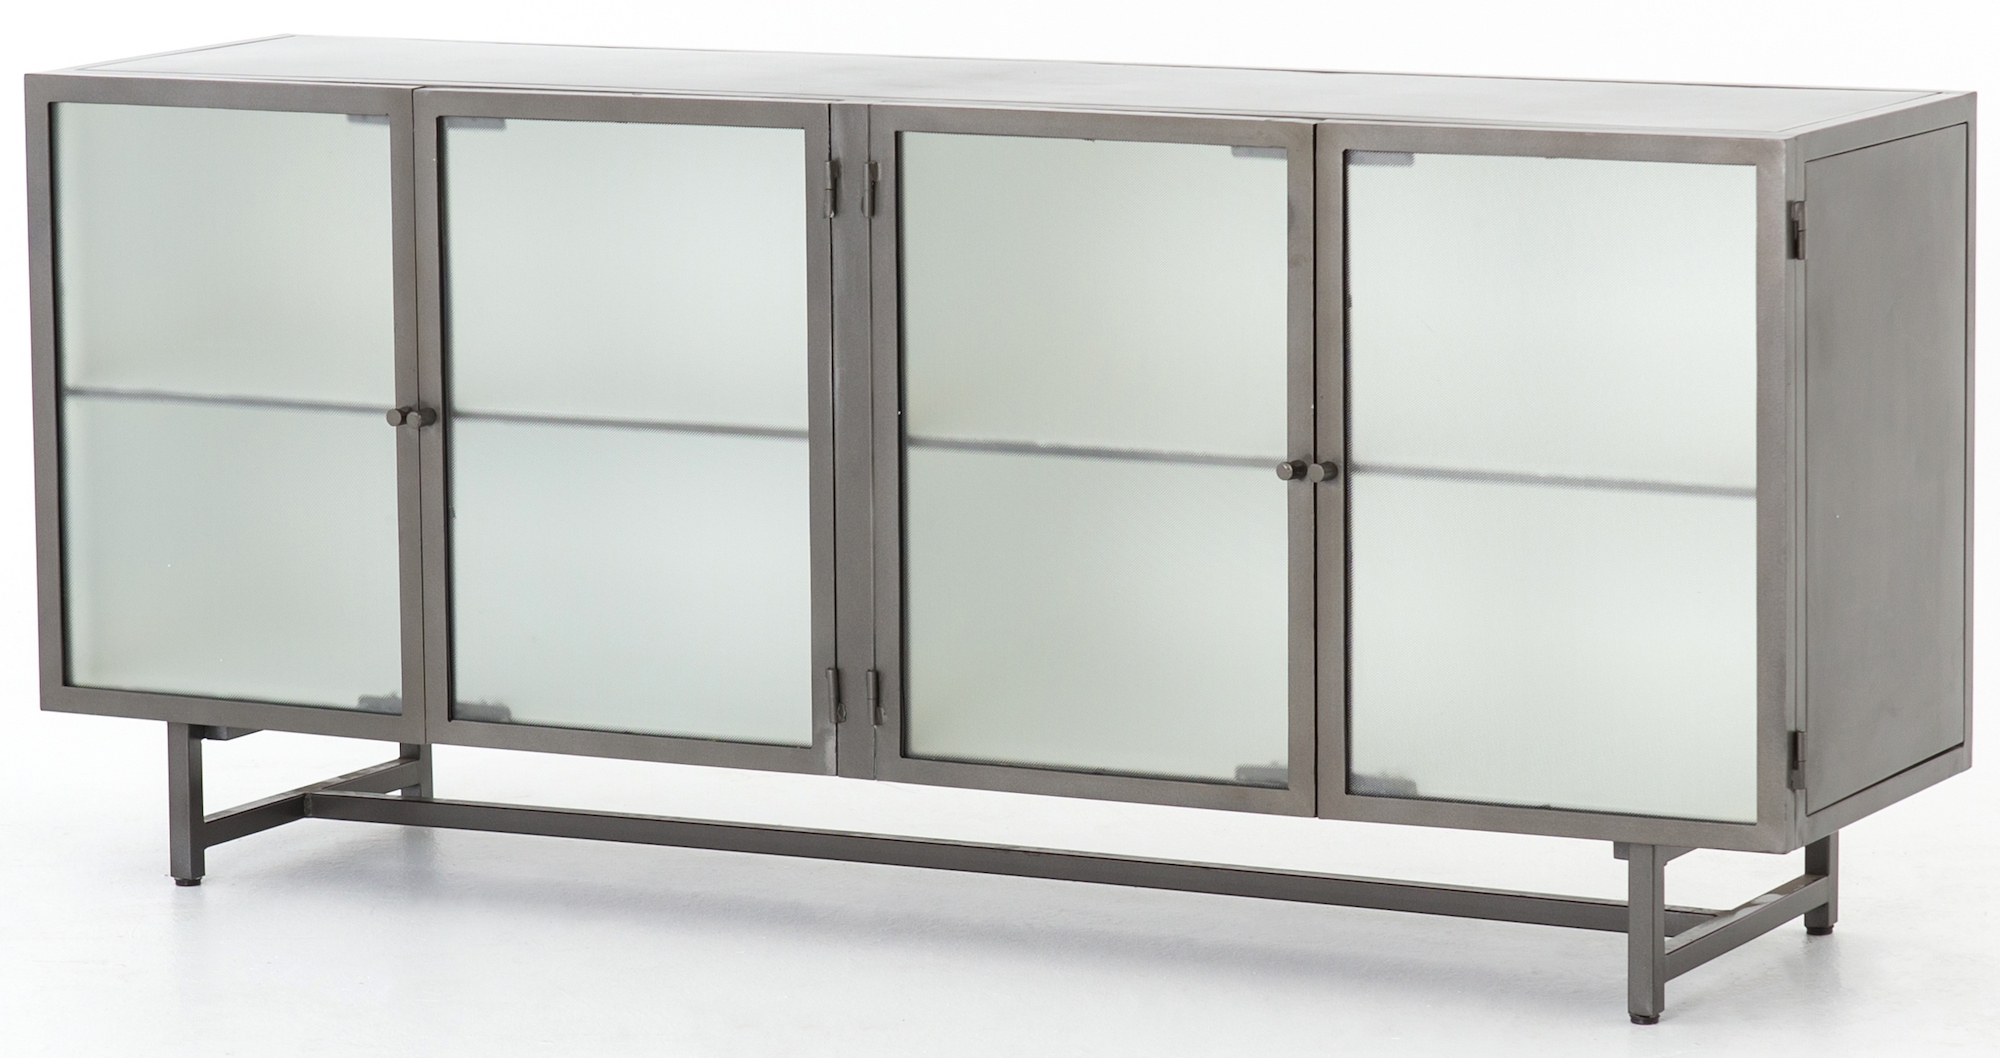 Cabinets, Consoles & Sofa Tables | Htgt Furniture throughout Gunmetal Perforated Brass Sideboards (Image 10 of 30)